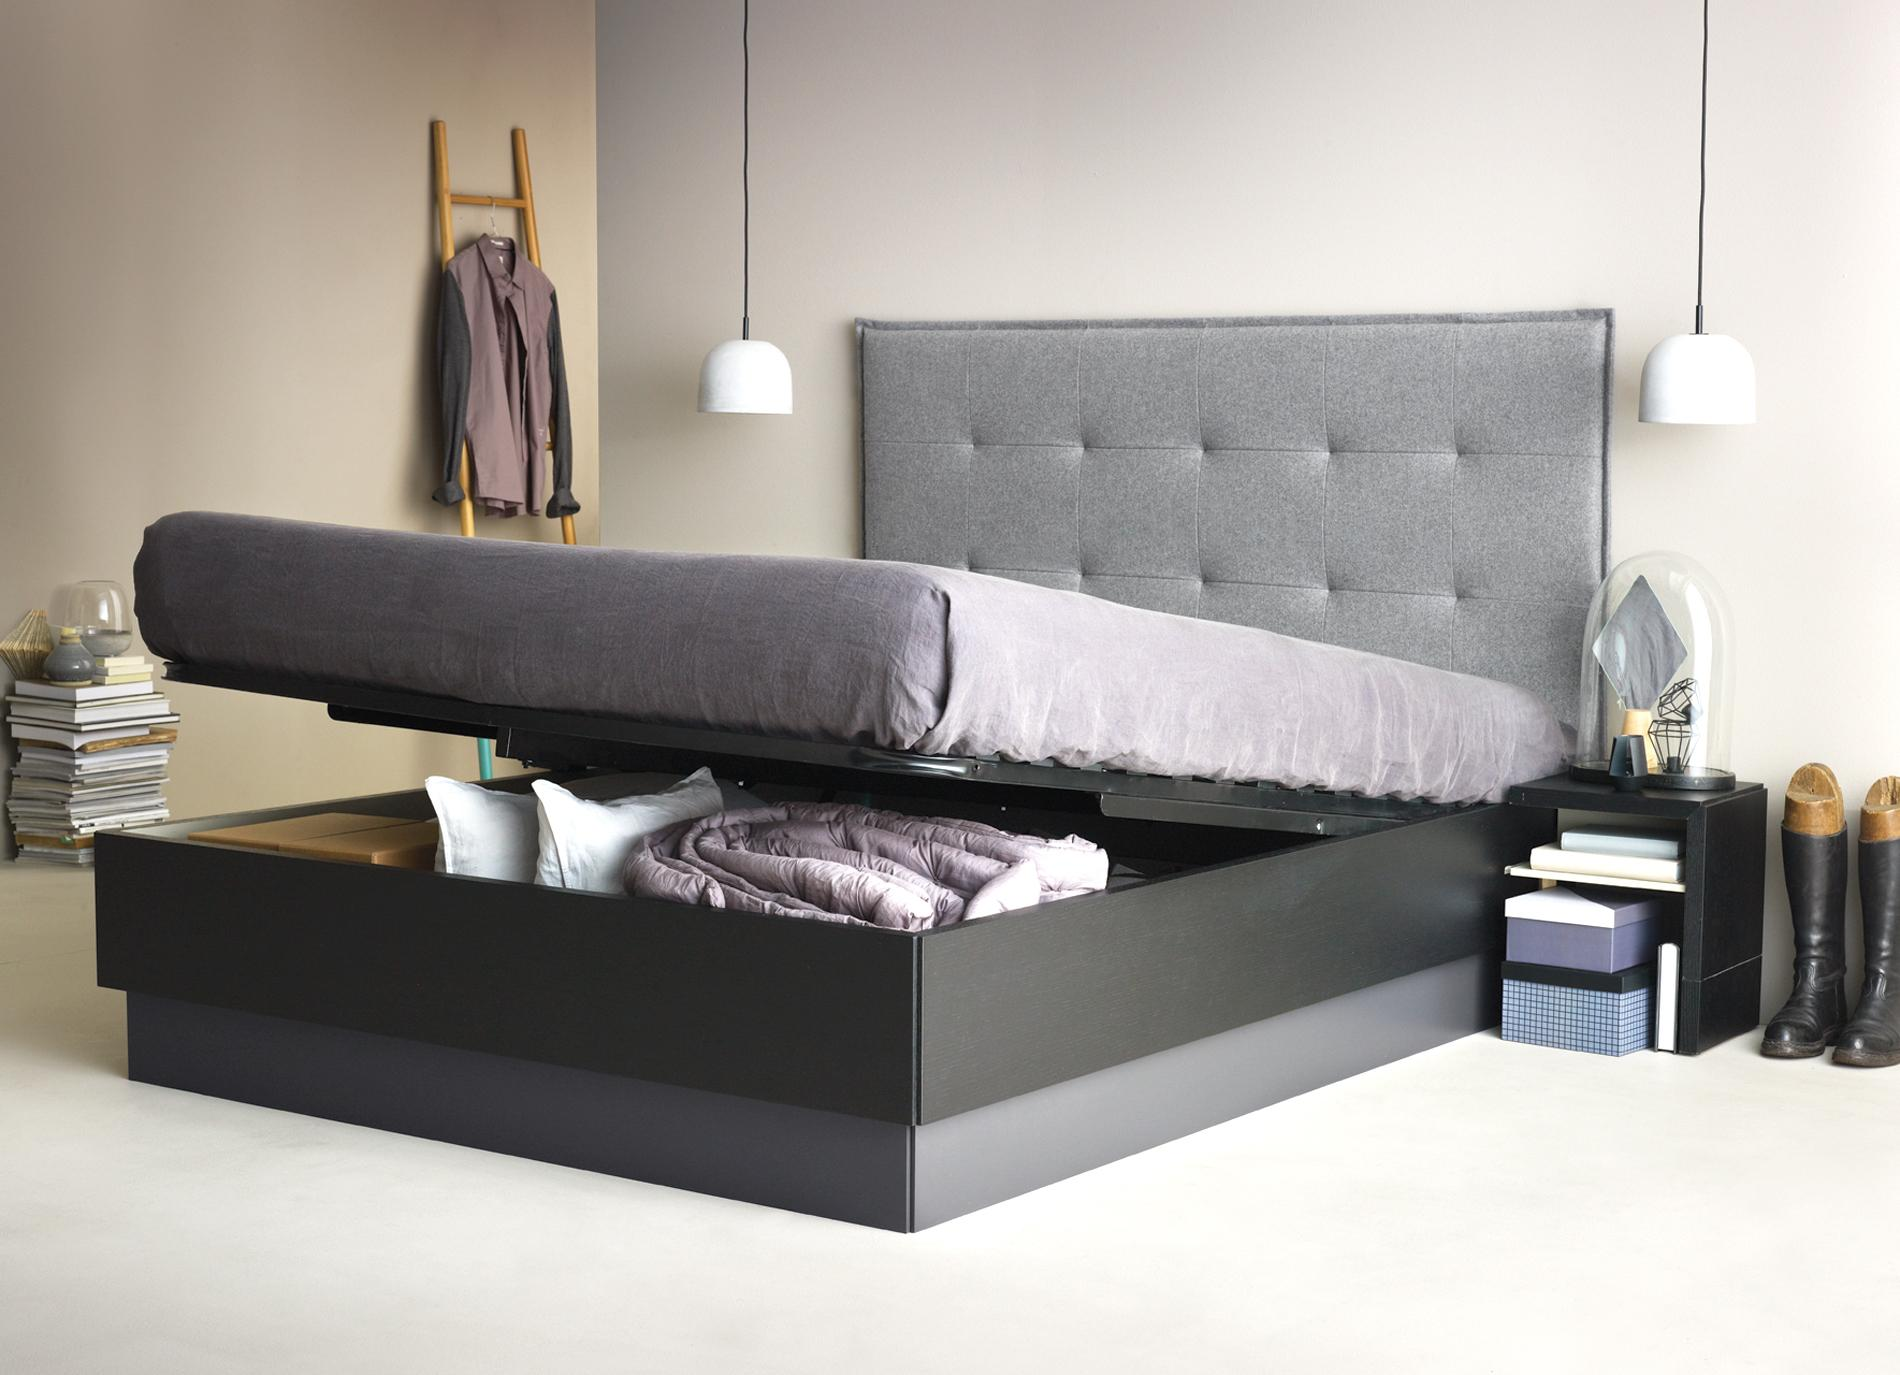 lit coulissant sous estrade awesome en kiosque with lit coulissant sous estrade simple lit. Black Bedroom Furniture Sets. Home Design Ideas